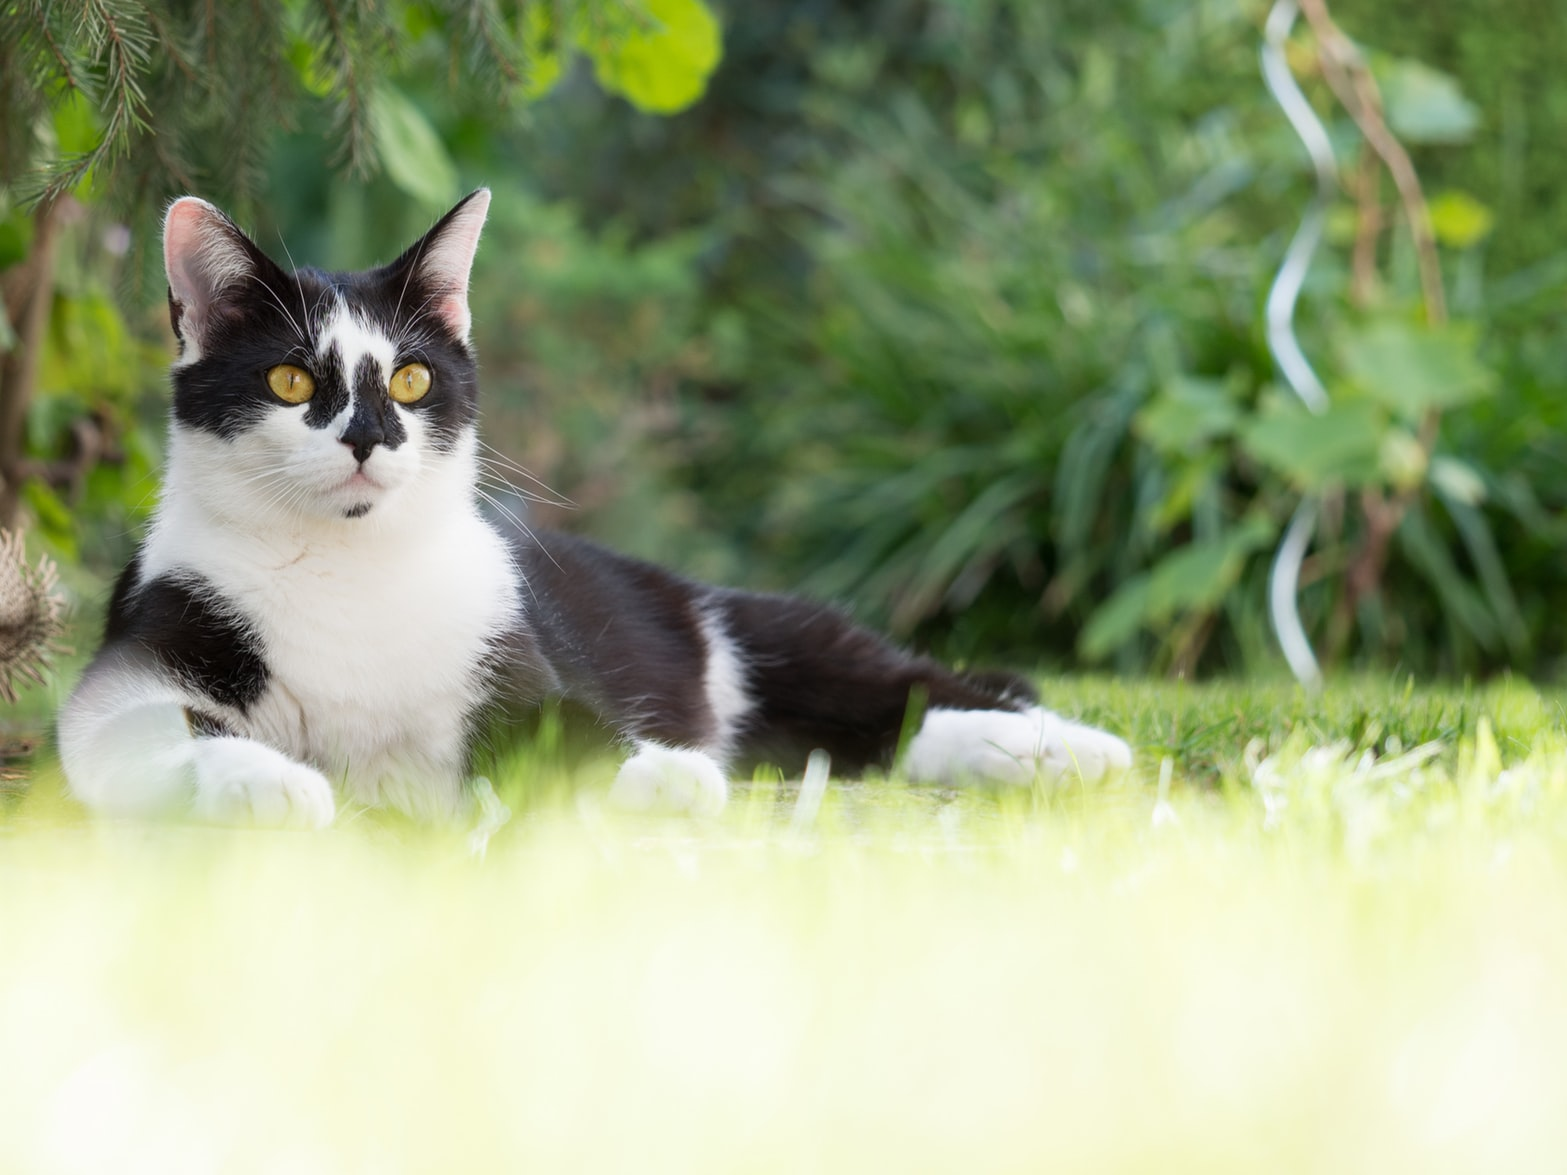 cute black and white cat with yellow eyes in nature